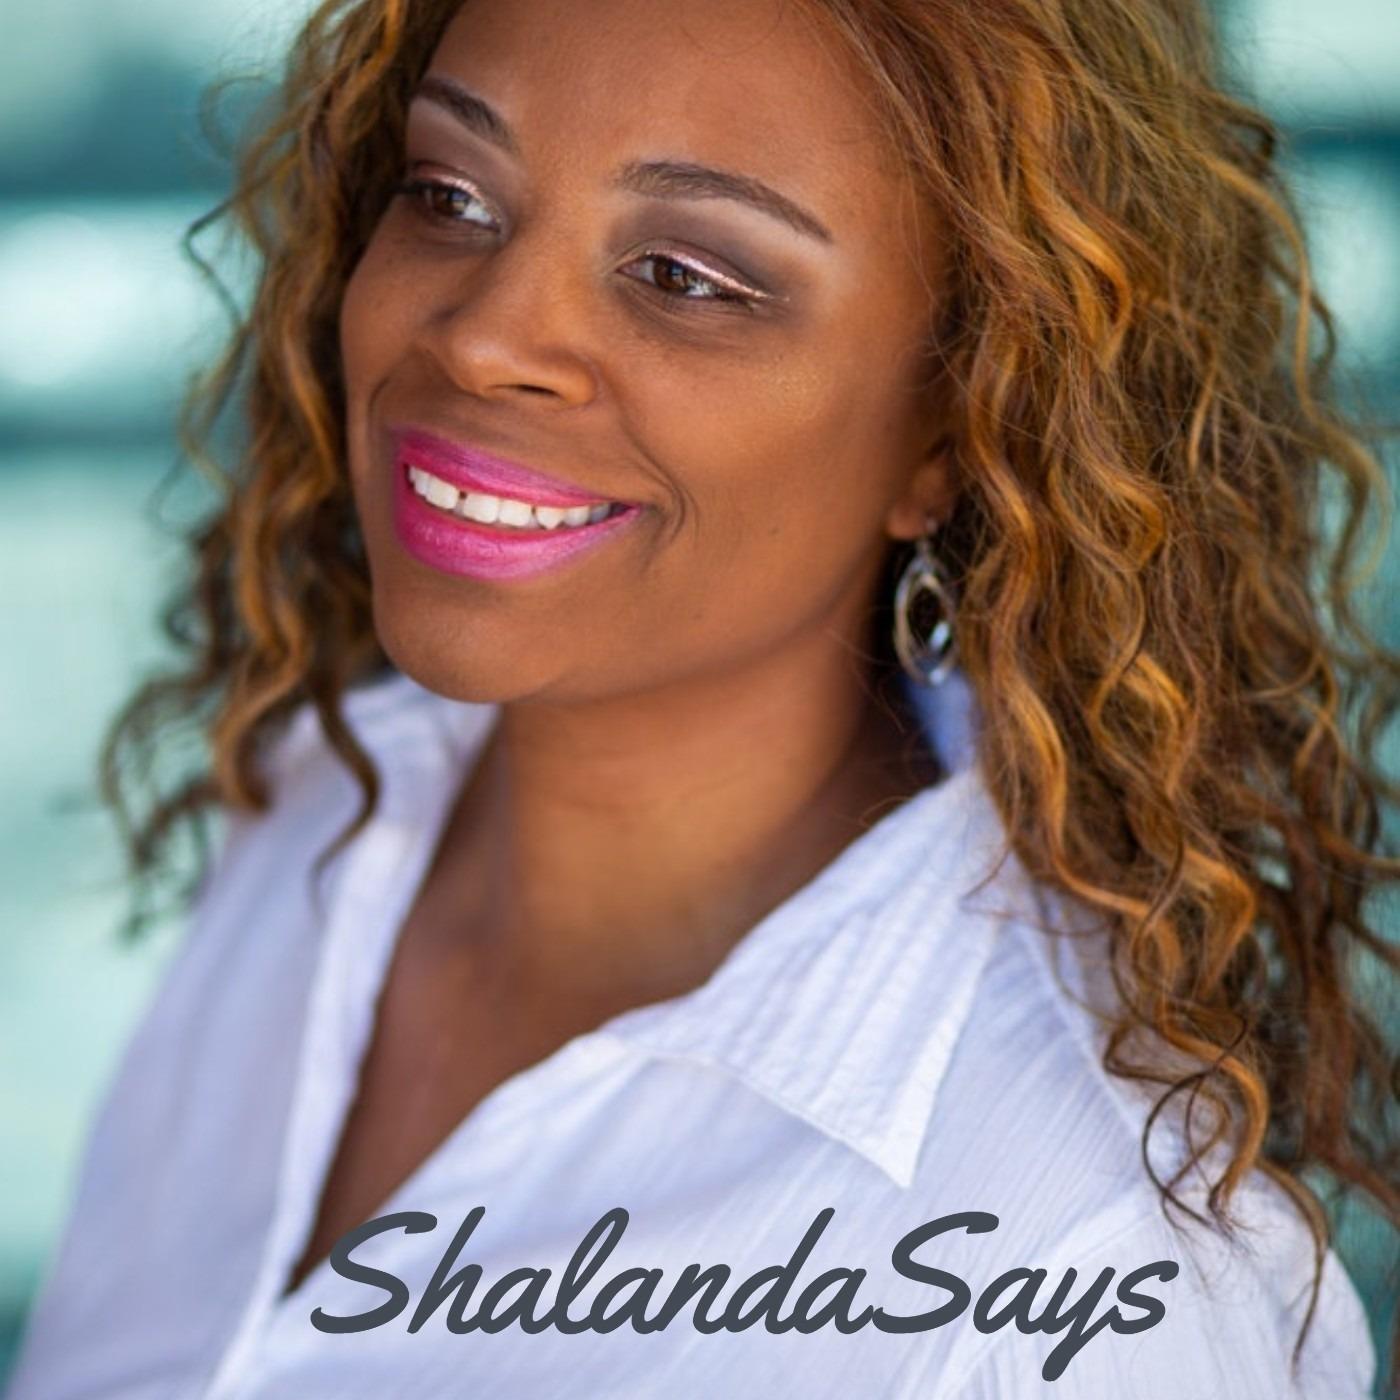 ShalandaSays Meet Career Strategist Yvette Costa